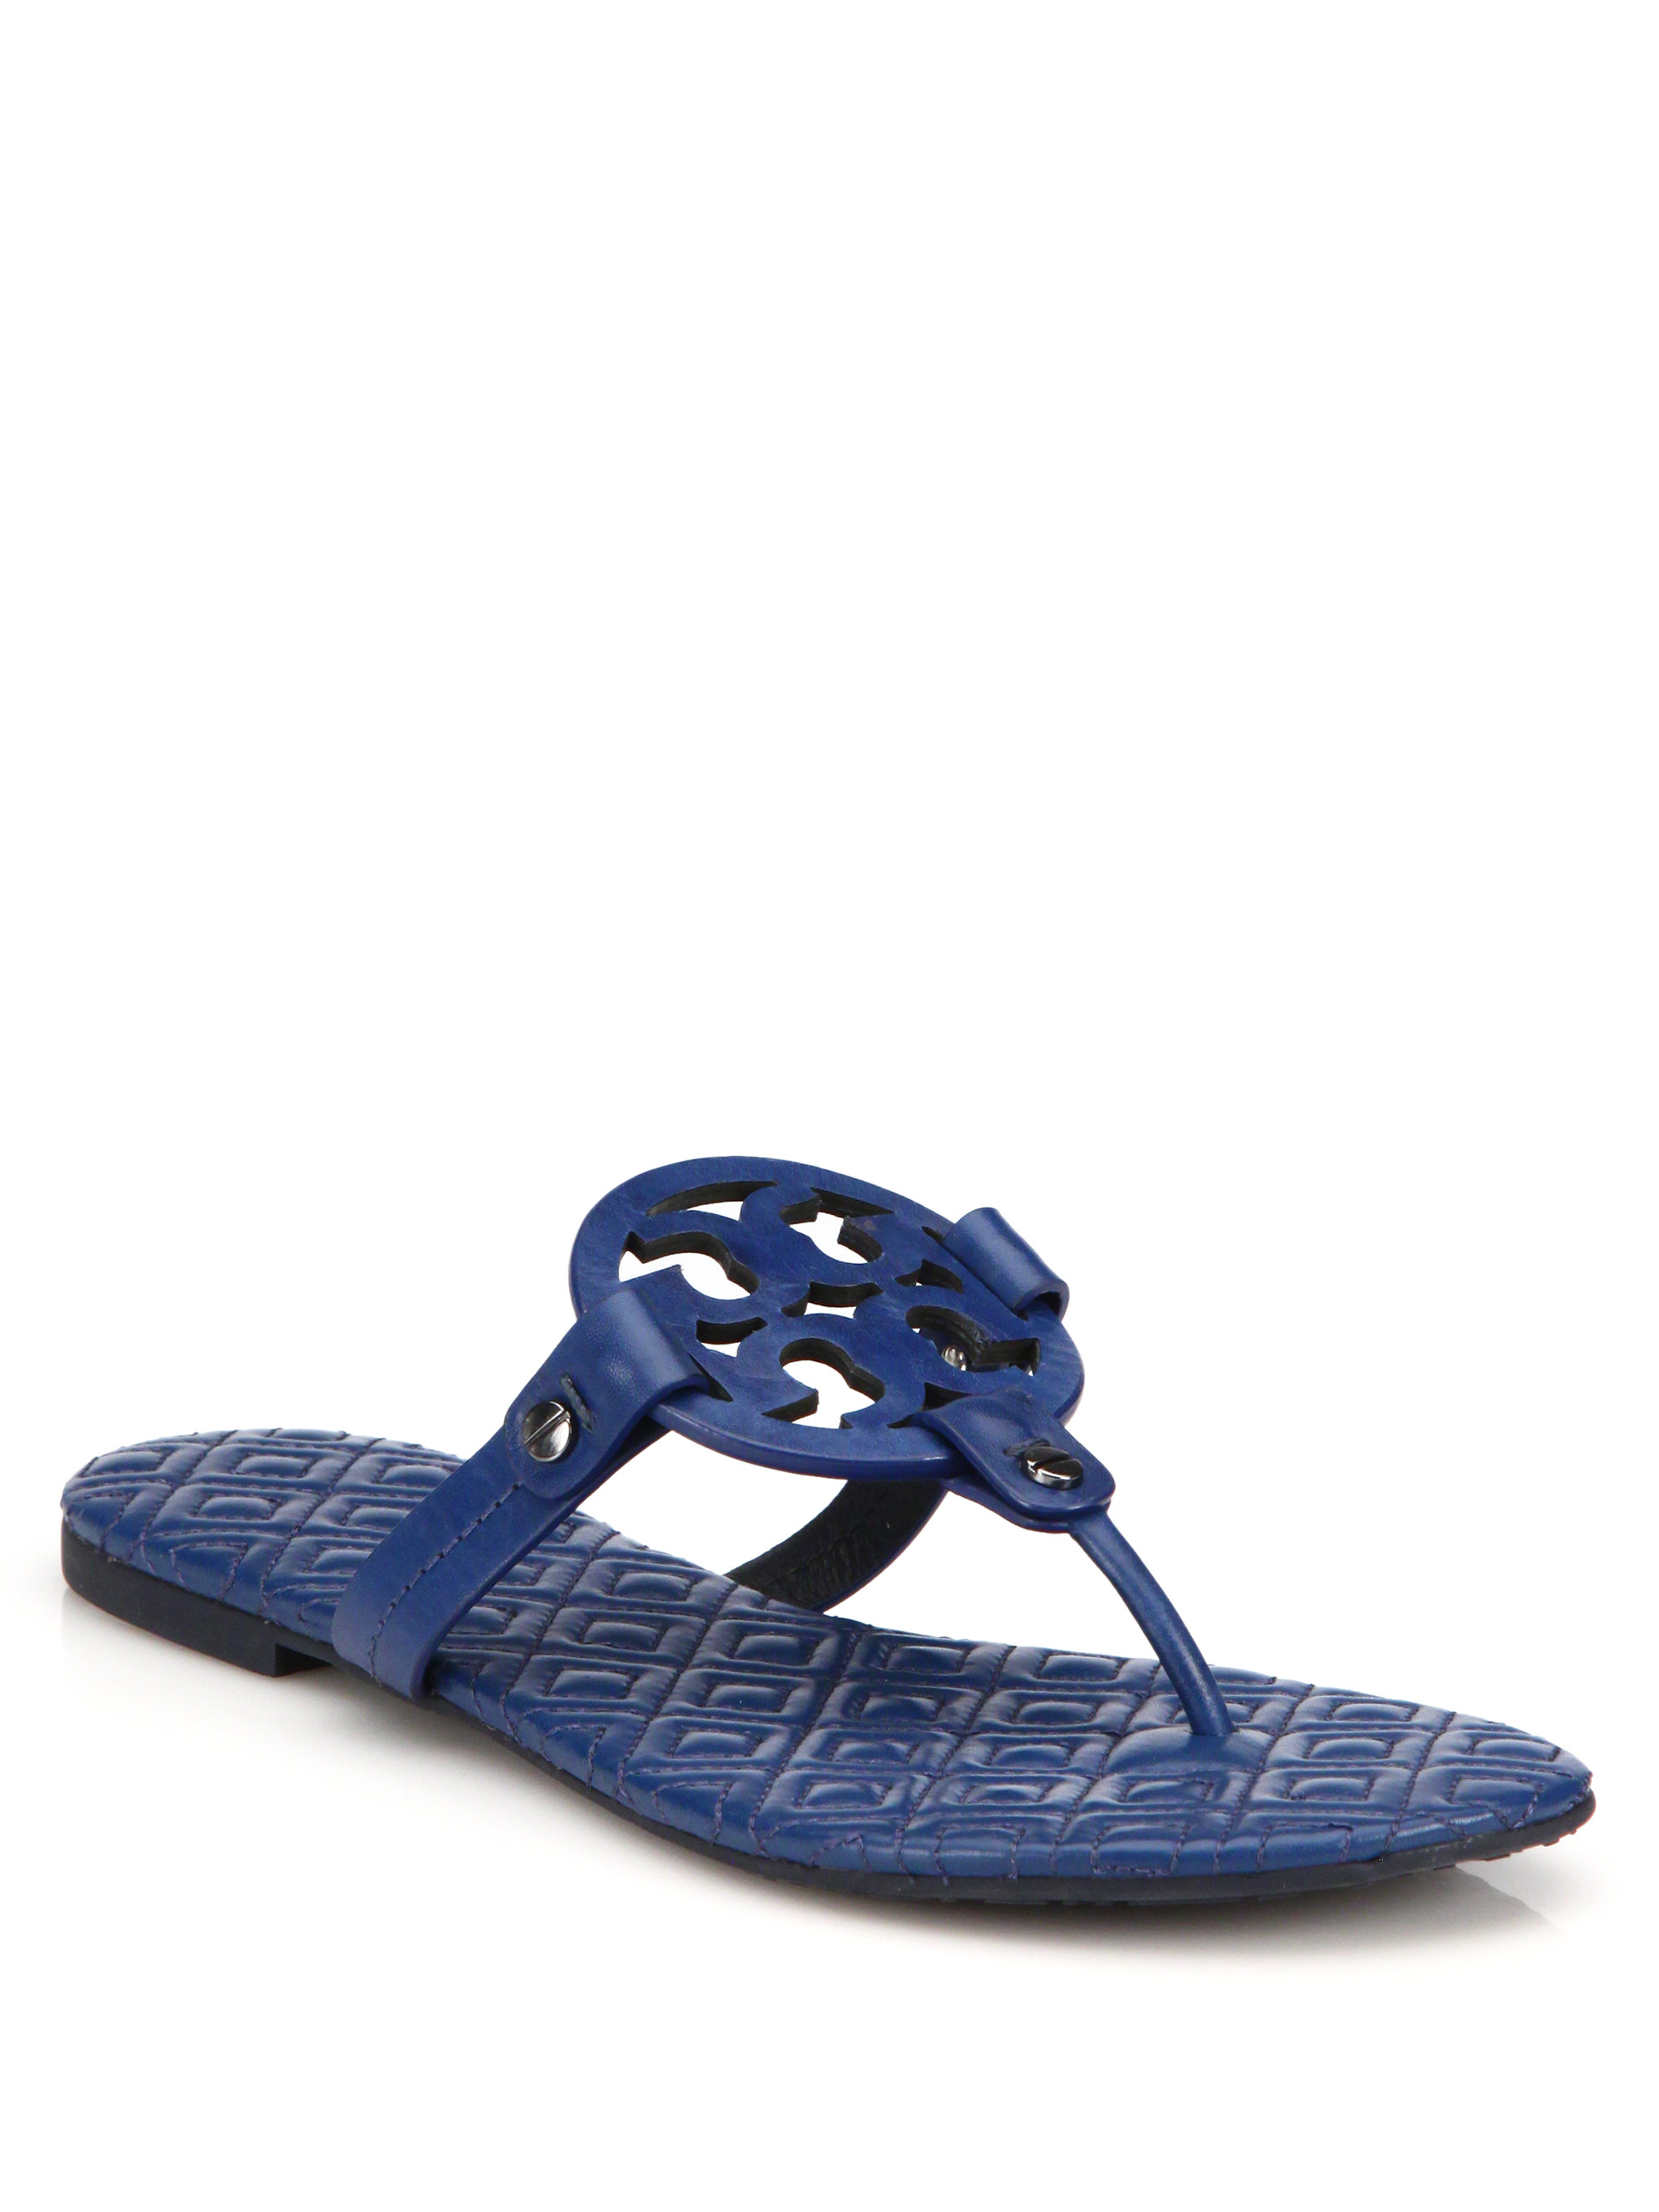 Tory Burch Miller Quilted Leather Logo Thong Sandals In